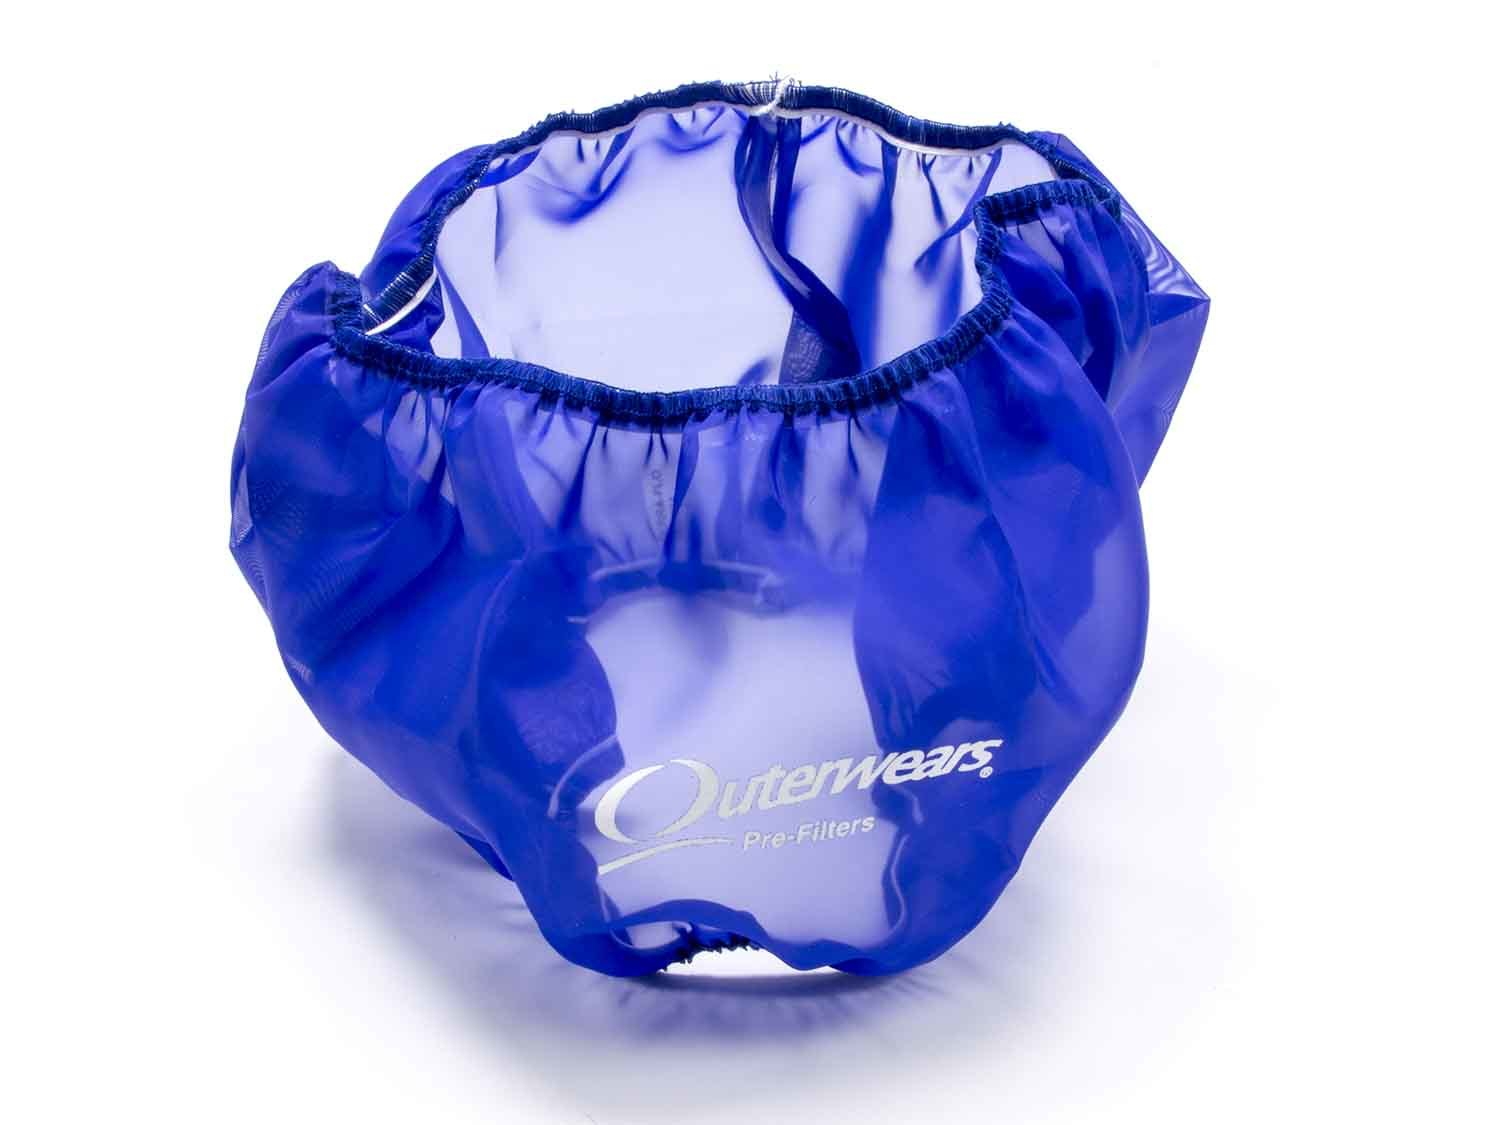 Outerwears 10-1004-02 Air Filter Wrap, Pre Filter, 14 in OD, 5 in Tall, Polyester, Blue, Each